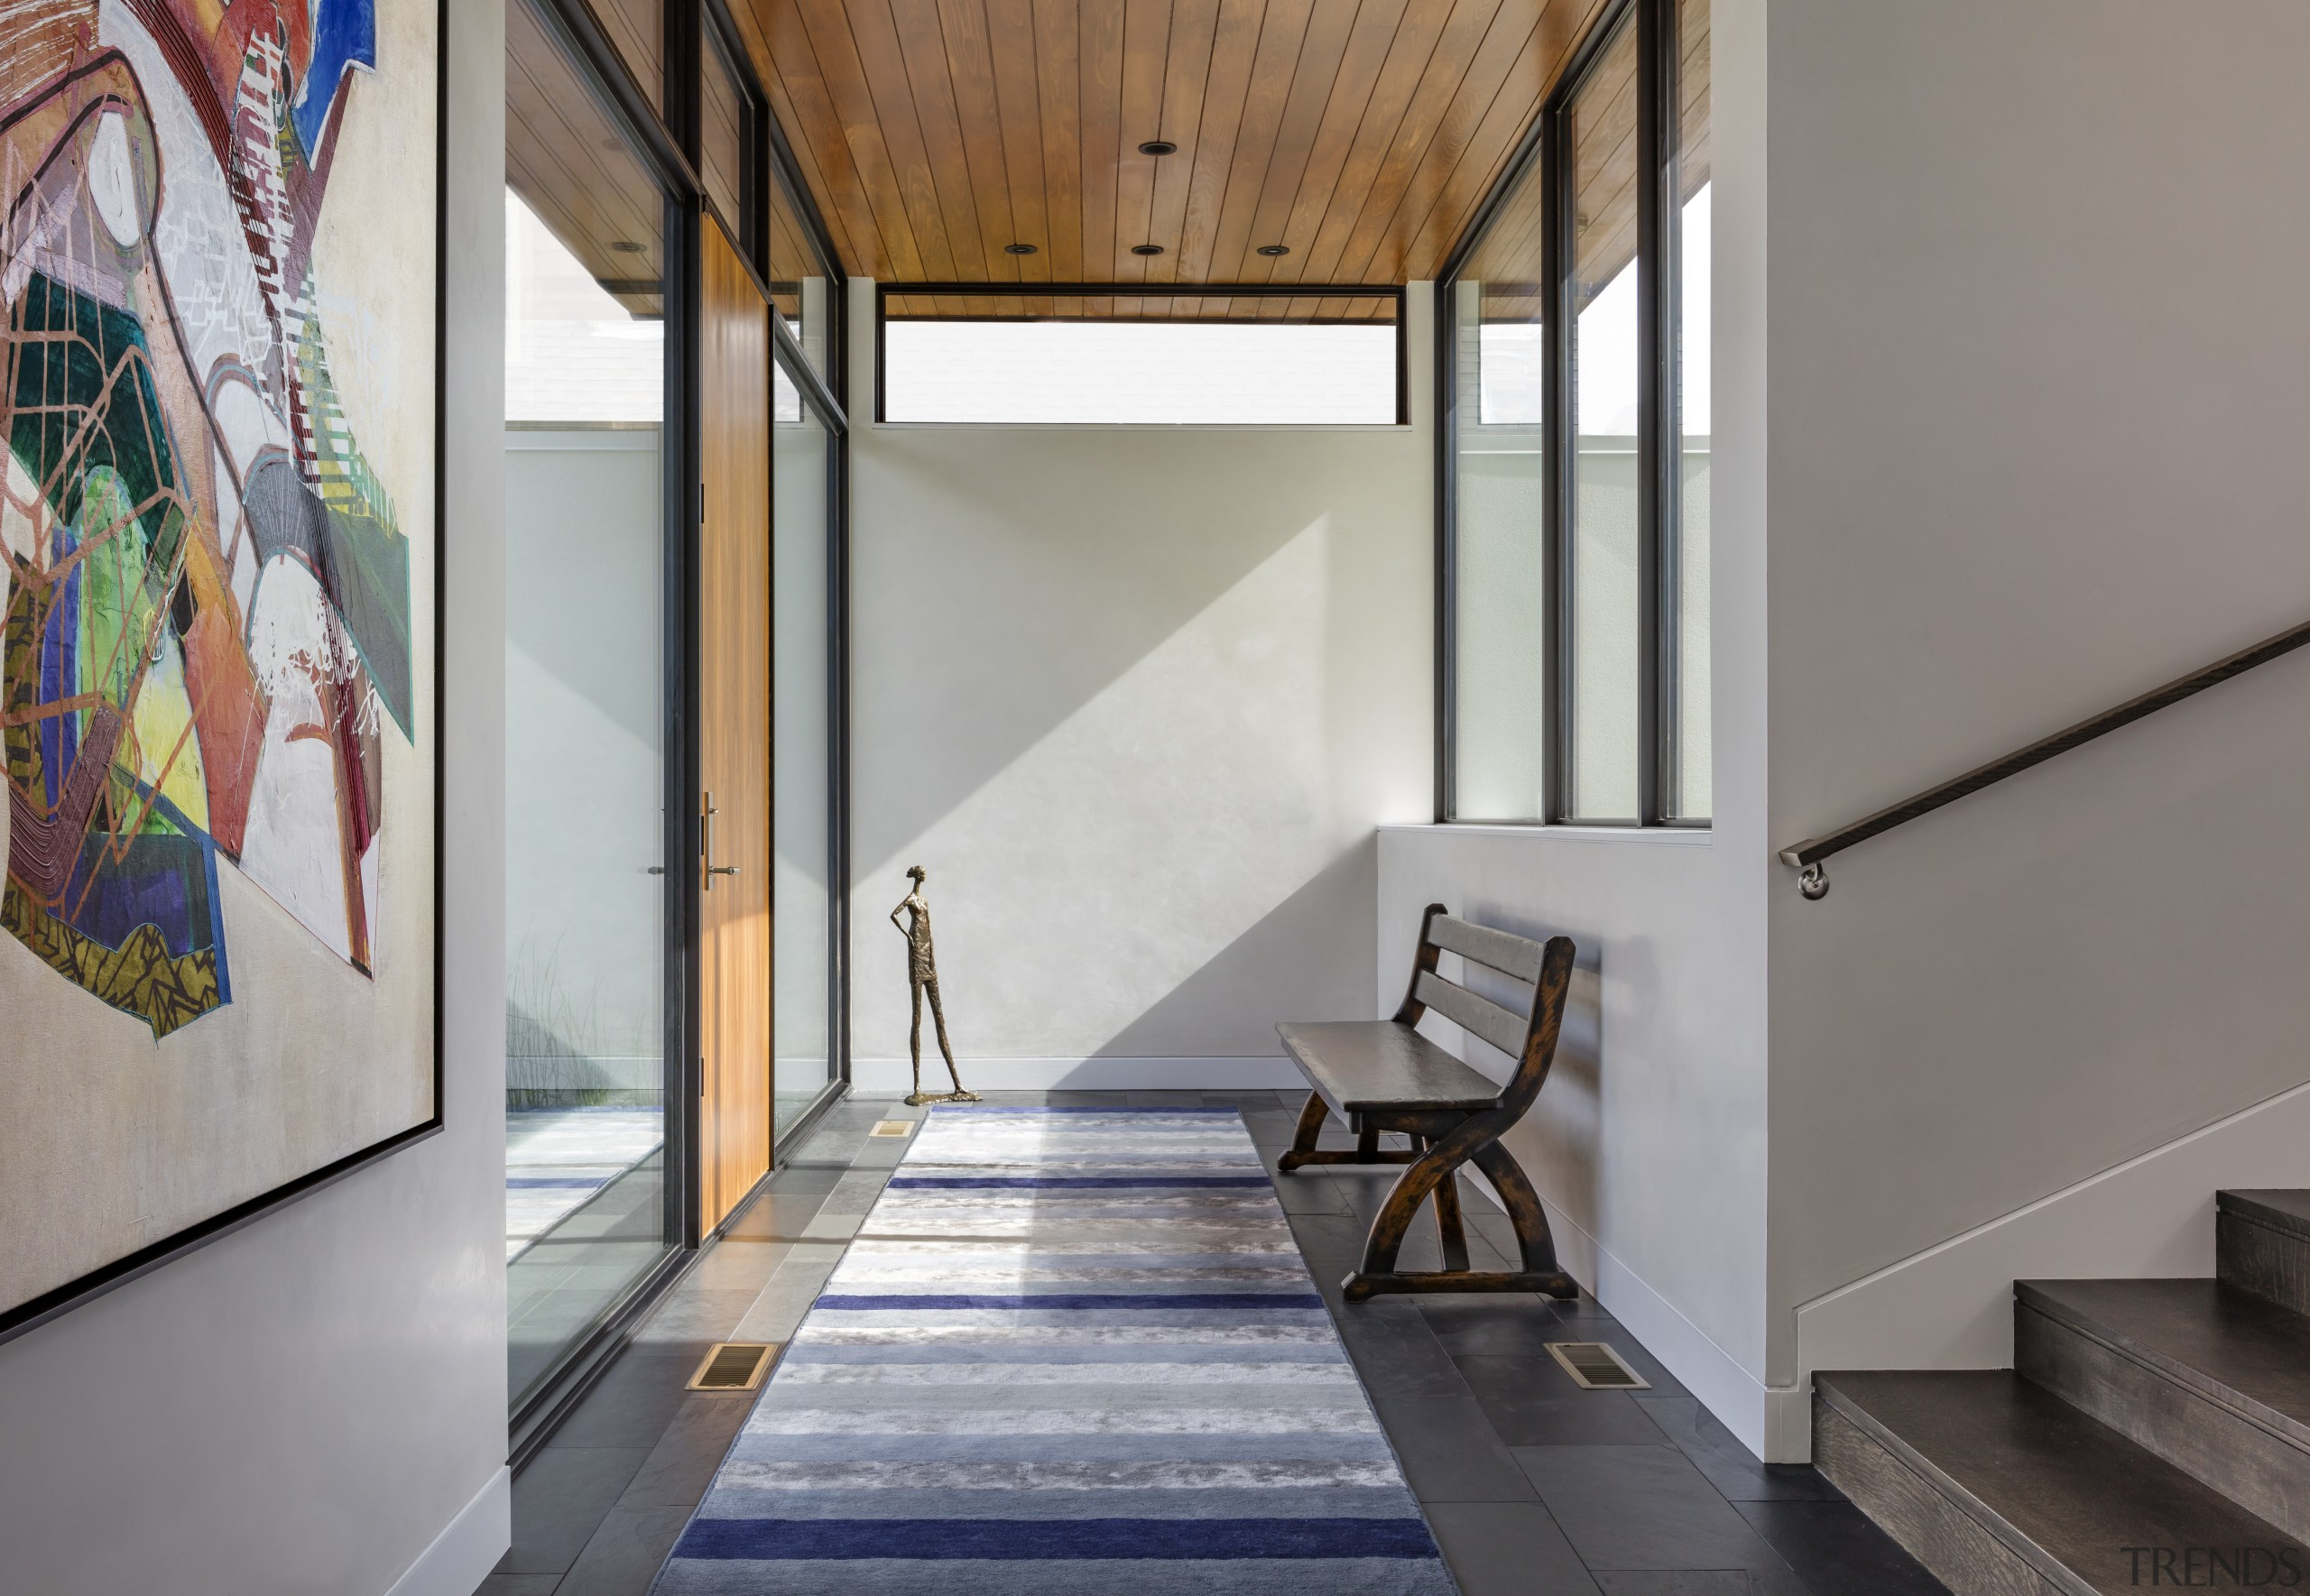 Site's unusual aspects used as design inspiration for architecture, floor, house, interior design, stairs, entranceway, Peterssen Keller Architects